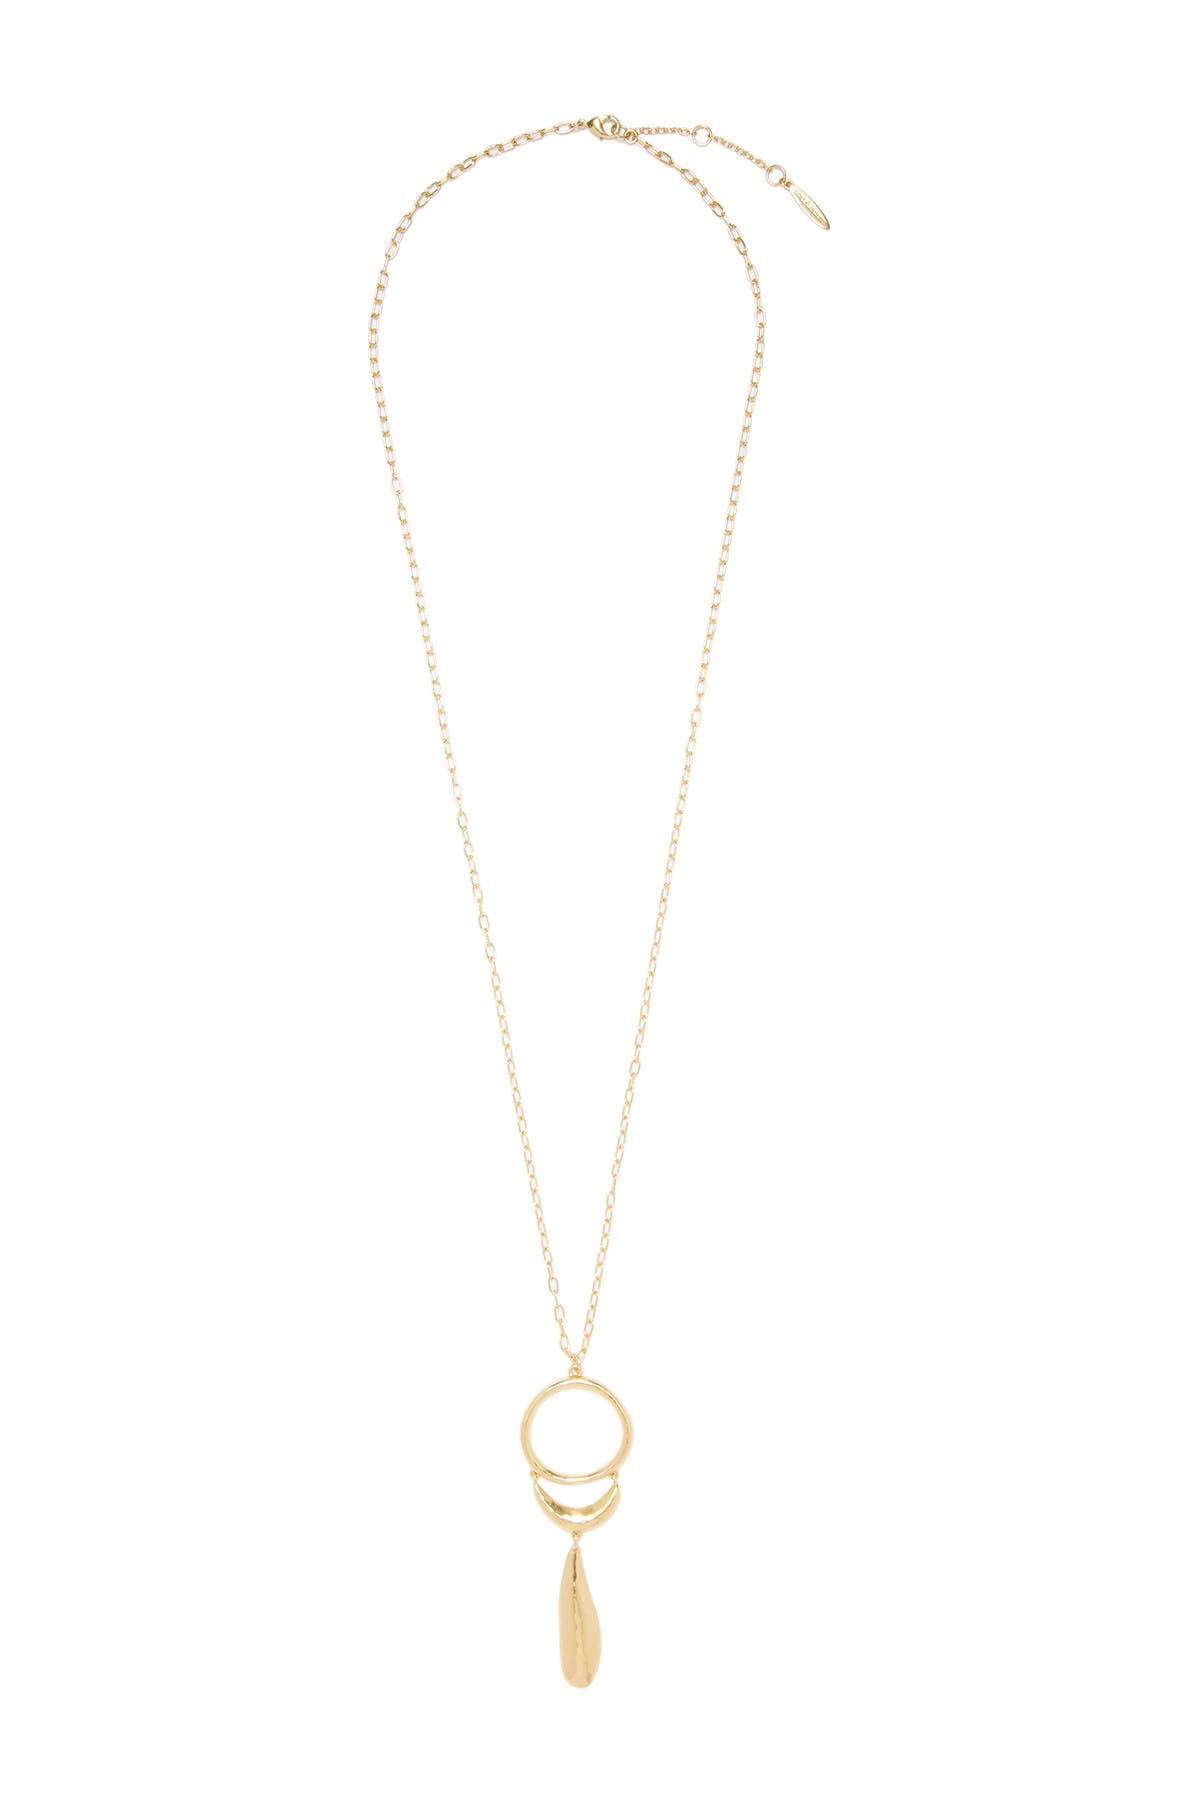 """Image of Sole Society 12K Yellow Gold Plated Hammered Textured 30"""" Open Ring Pendant Necklace"""